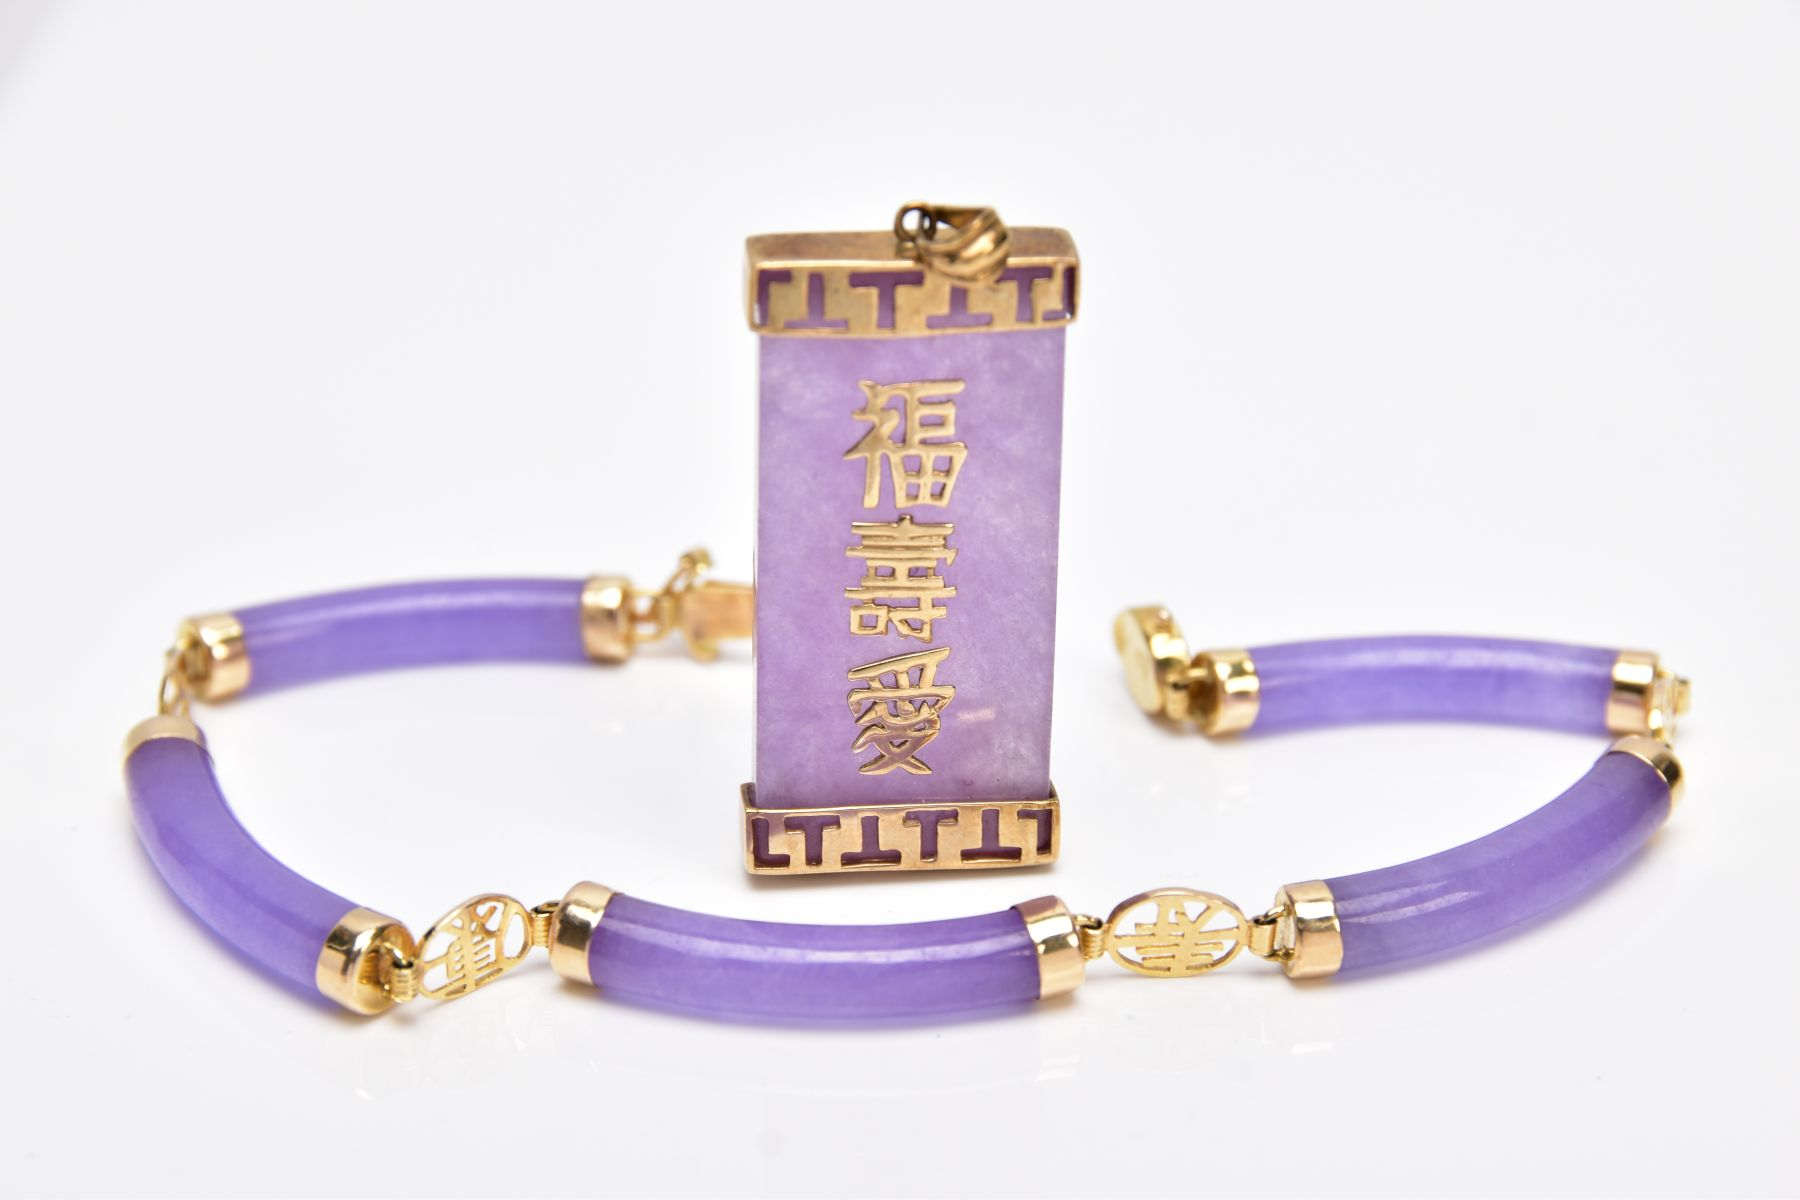 A 14CT GOLD LAVENDER JADE BRACELET AND A 9CT GOLD LAVENDER JADE PENDANT, the bracelet designed - Image 2 of 4